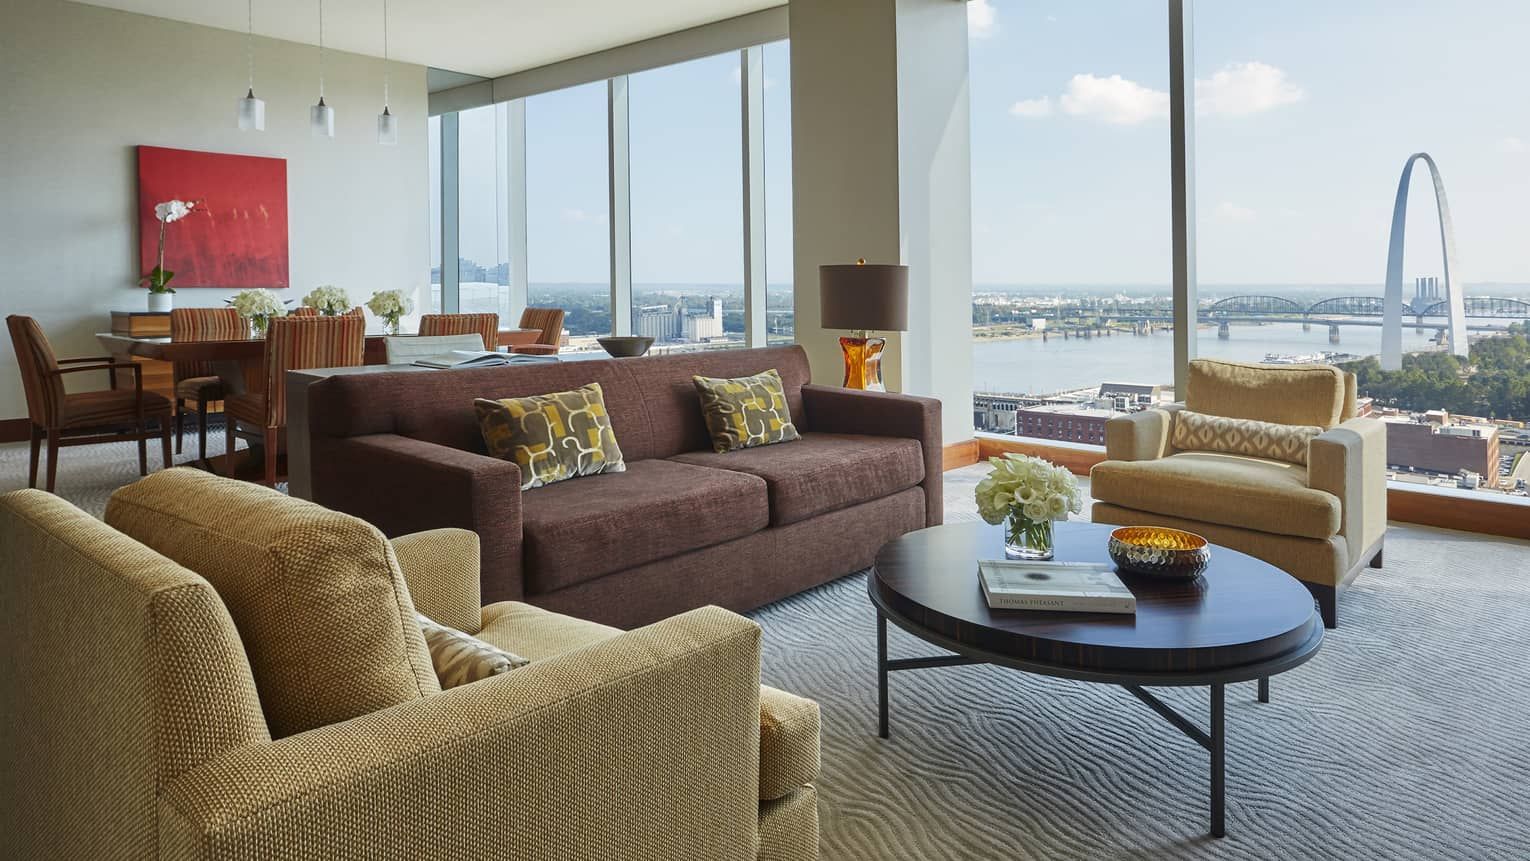 Luxury suite living room with burgundy sofa, yellow armchairs, round coffee table, tall windows with arch view